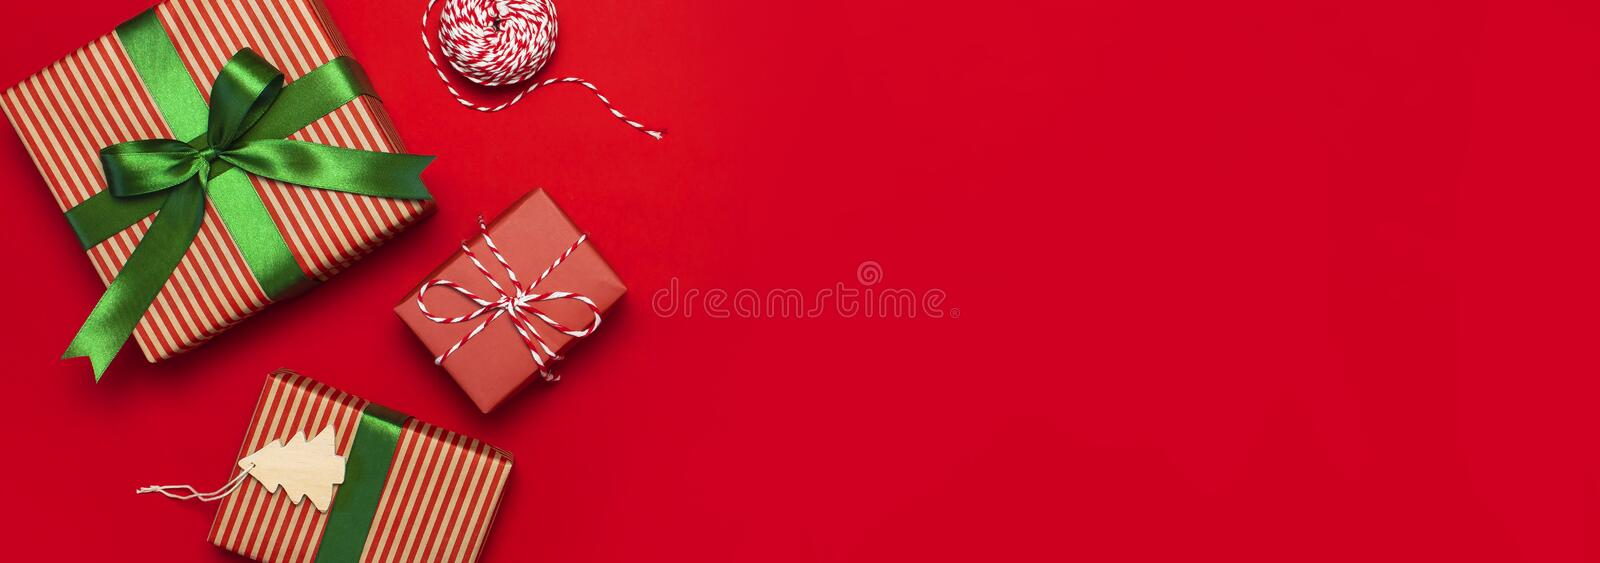 Gift boxes with green ribbon on red background top view flat lay. Holiday concept, new year or Christmas gift box, presents Xmas h stock images